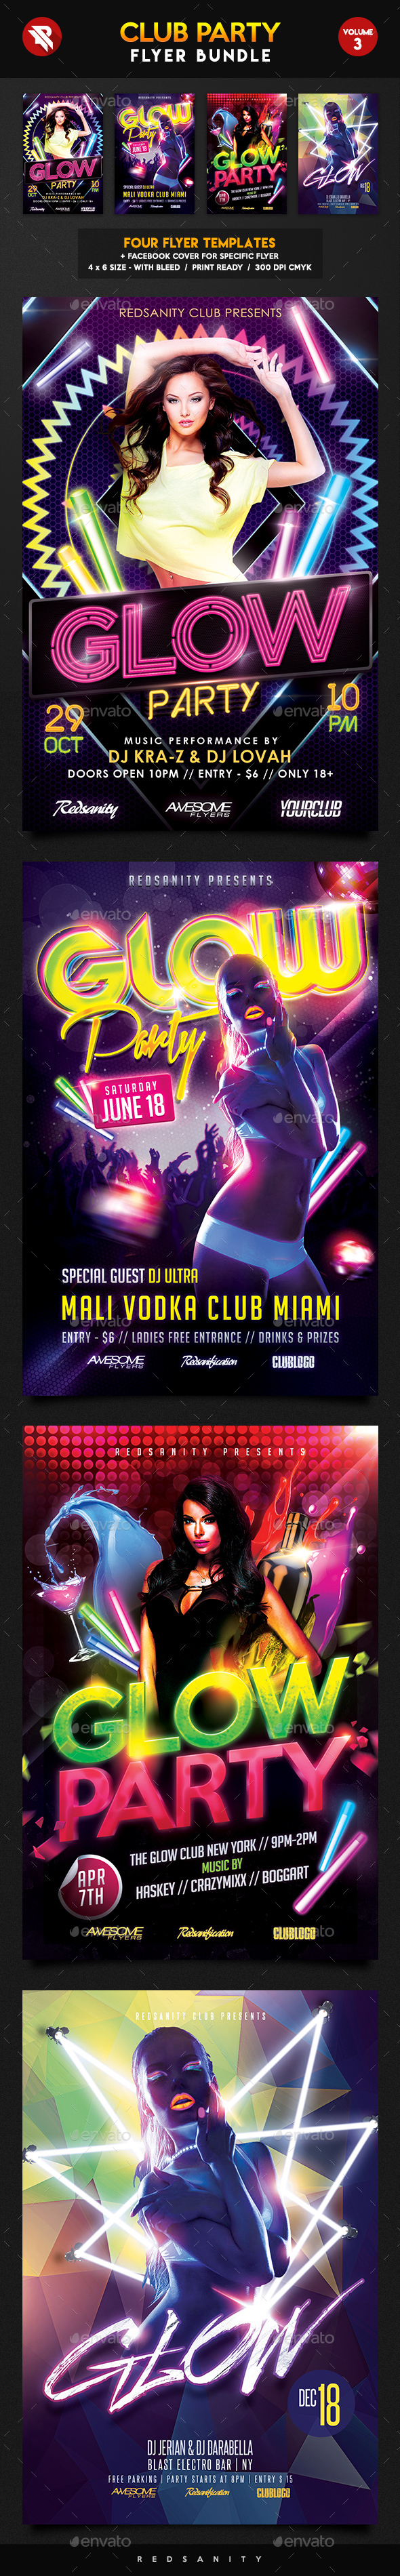 Club Flyer Bundle Vol.3 - Clubs & Parties Events